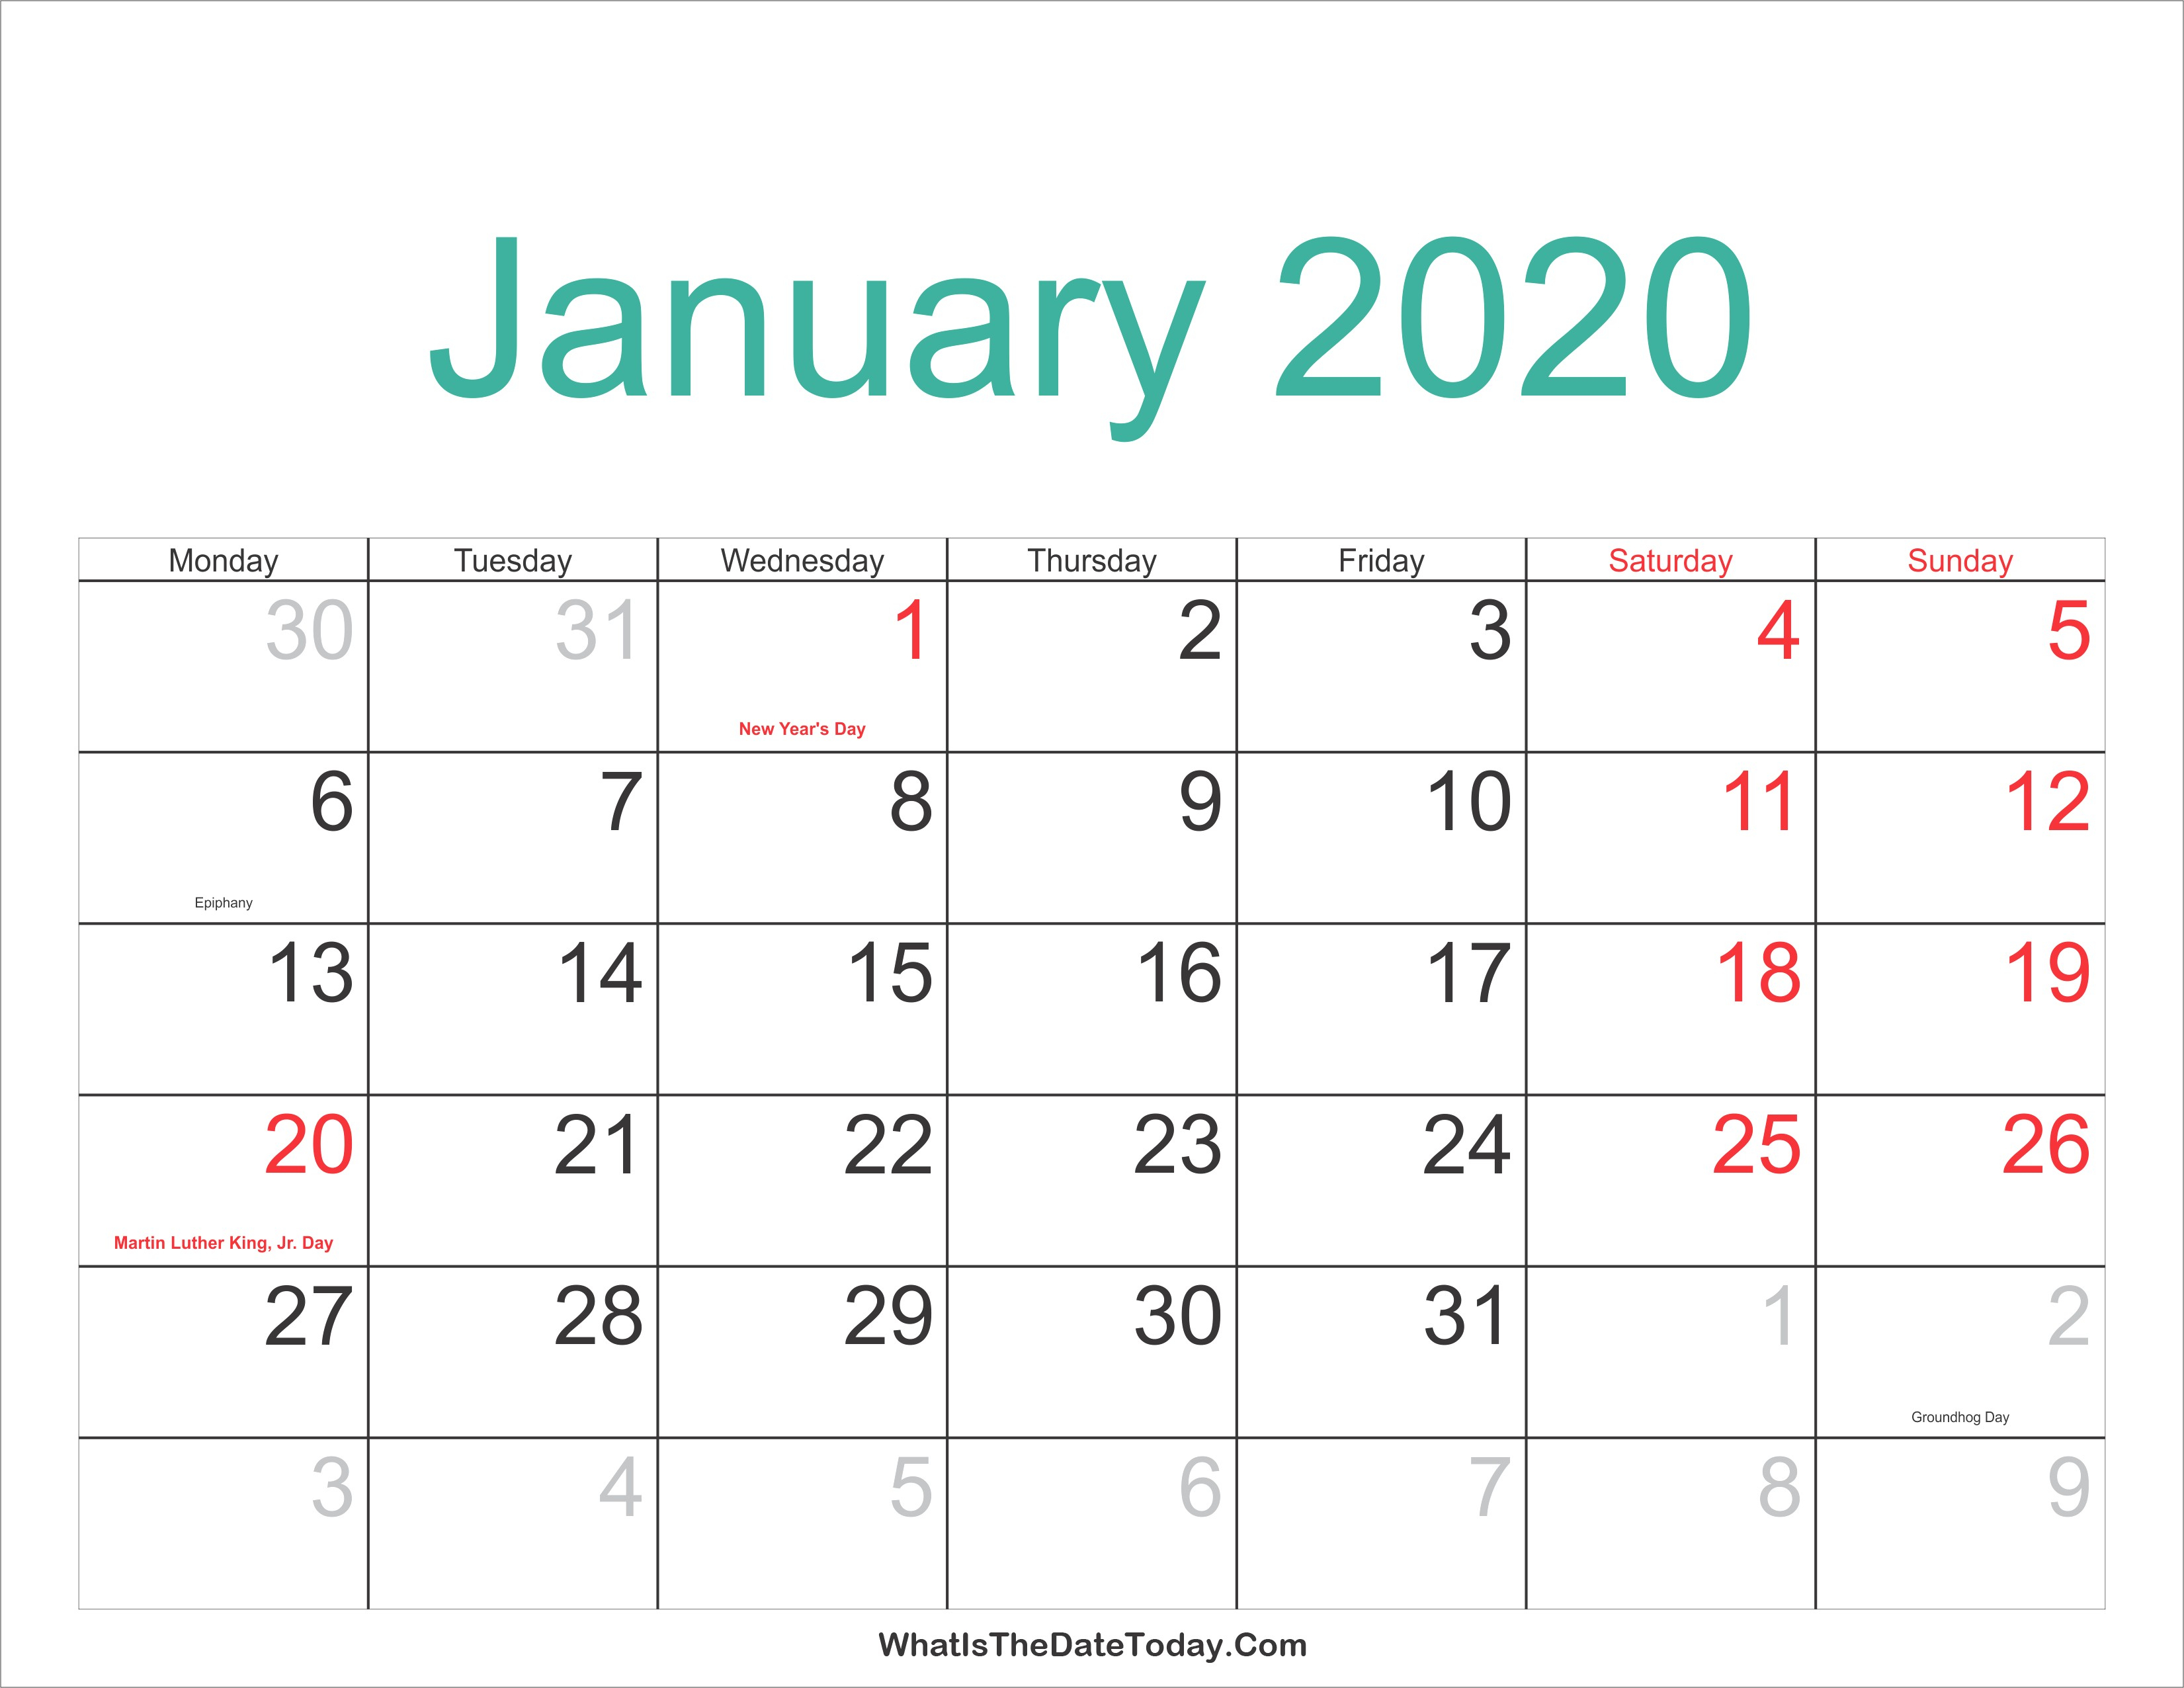 January 2020 Calendar Printable Holidays Full